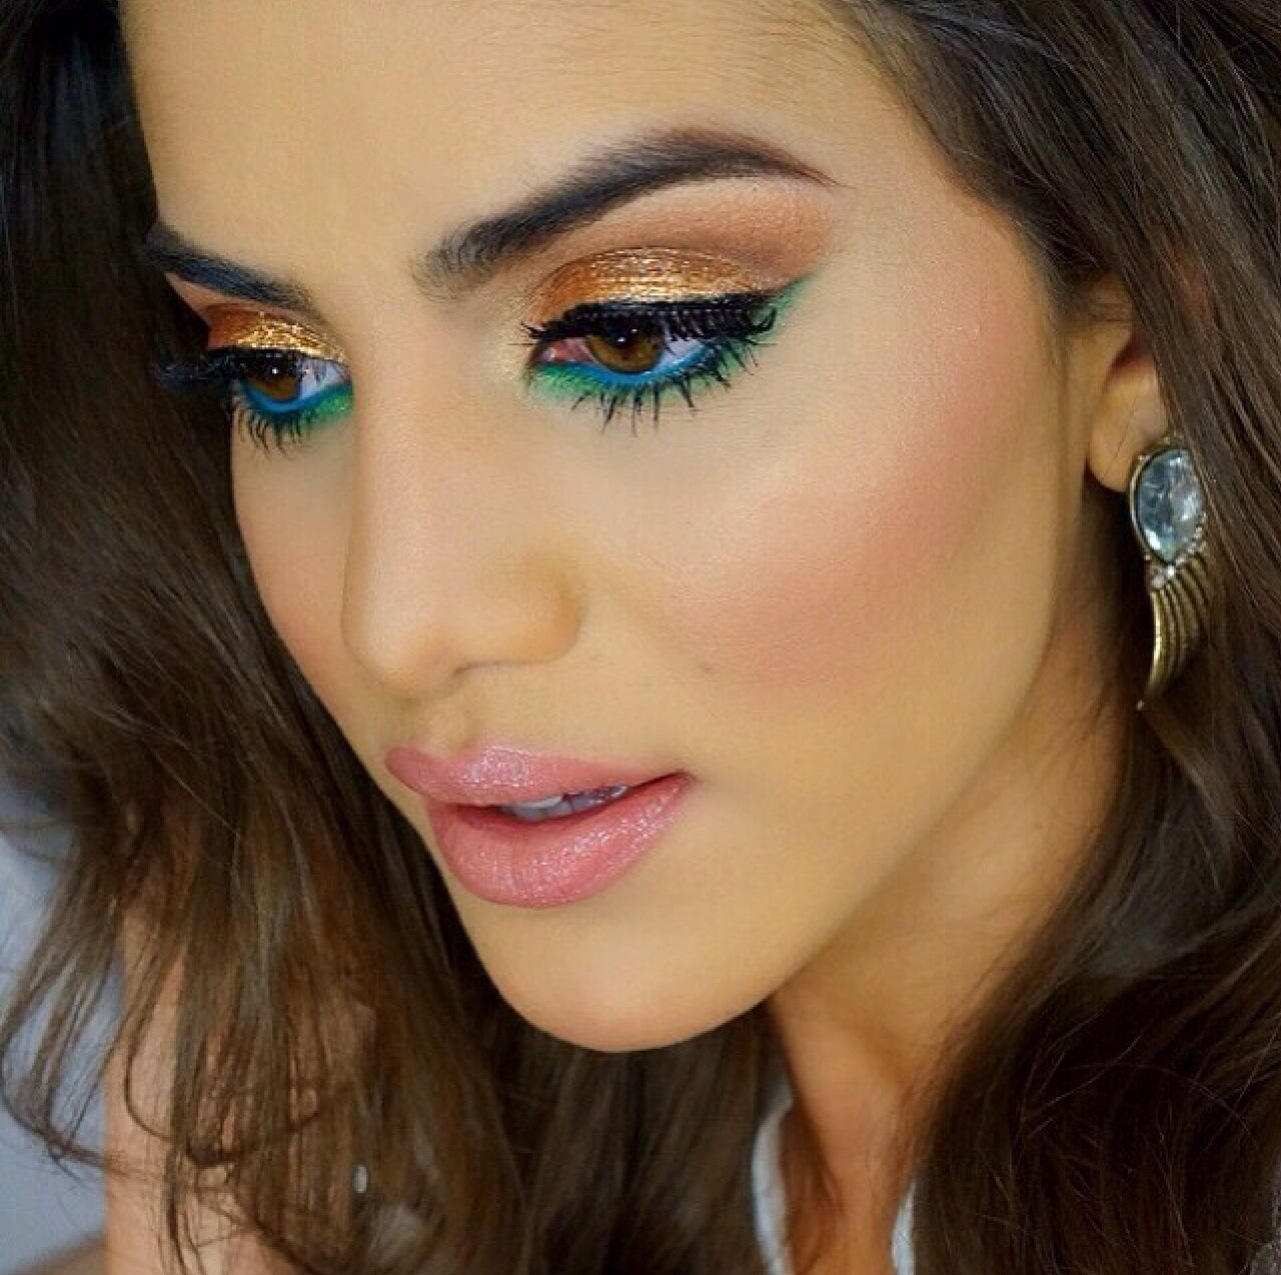 Trucco Per Natale.Beauty Factor By Monica Make Up Per Natale Modelity